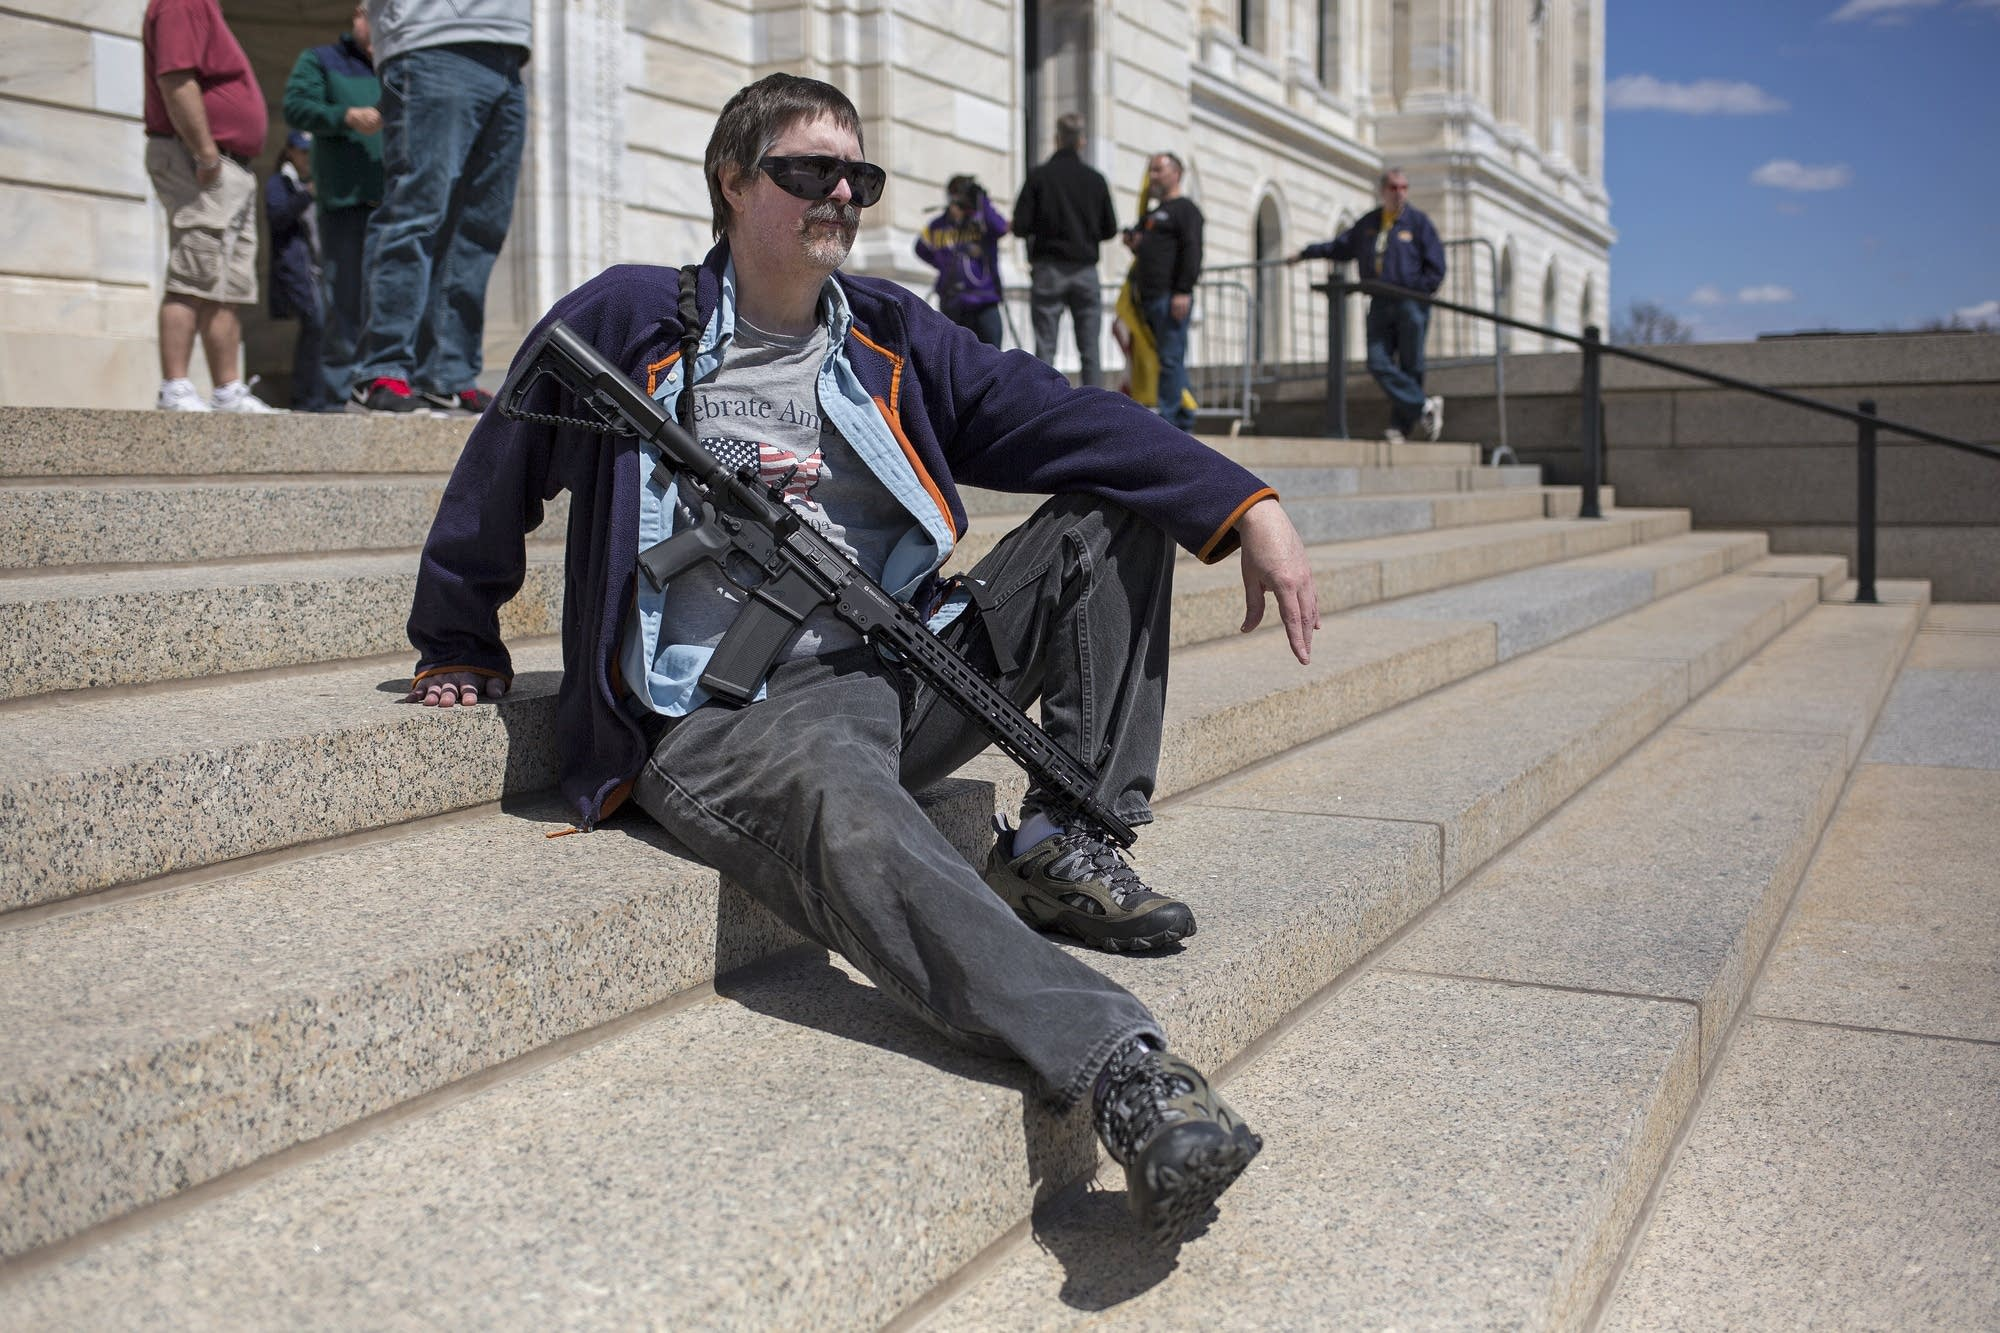 James Day of Mankato carries a custom AR-14 at the rally.